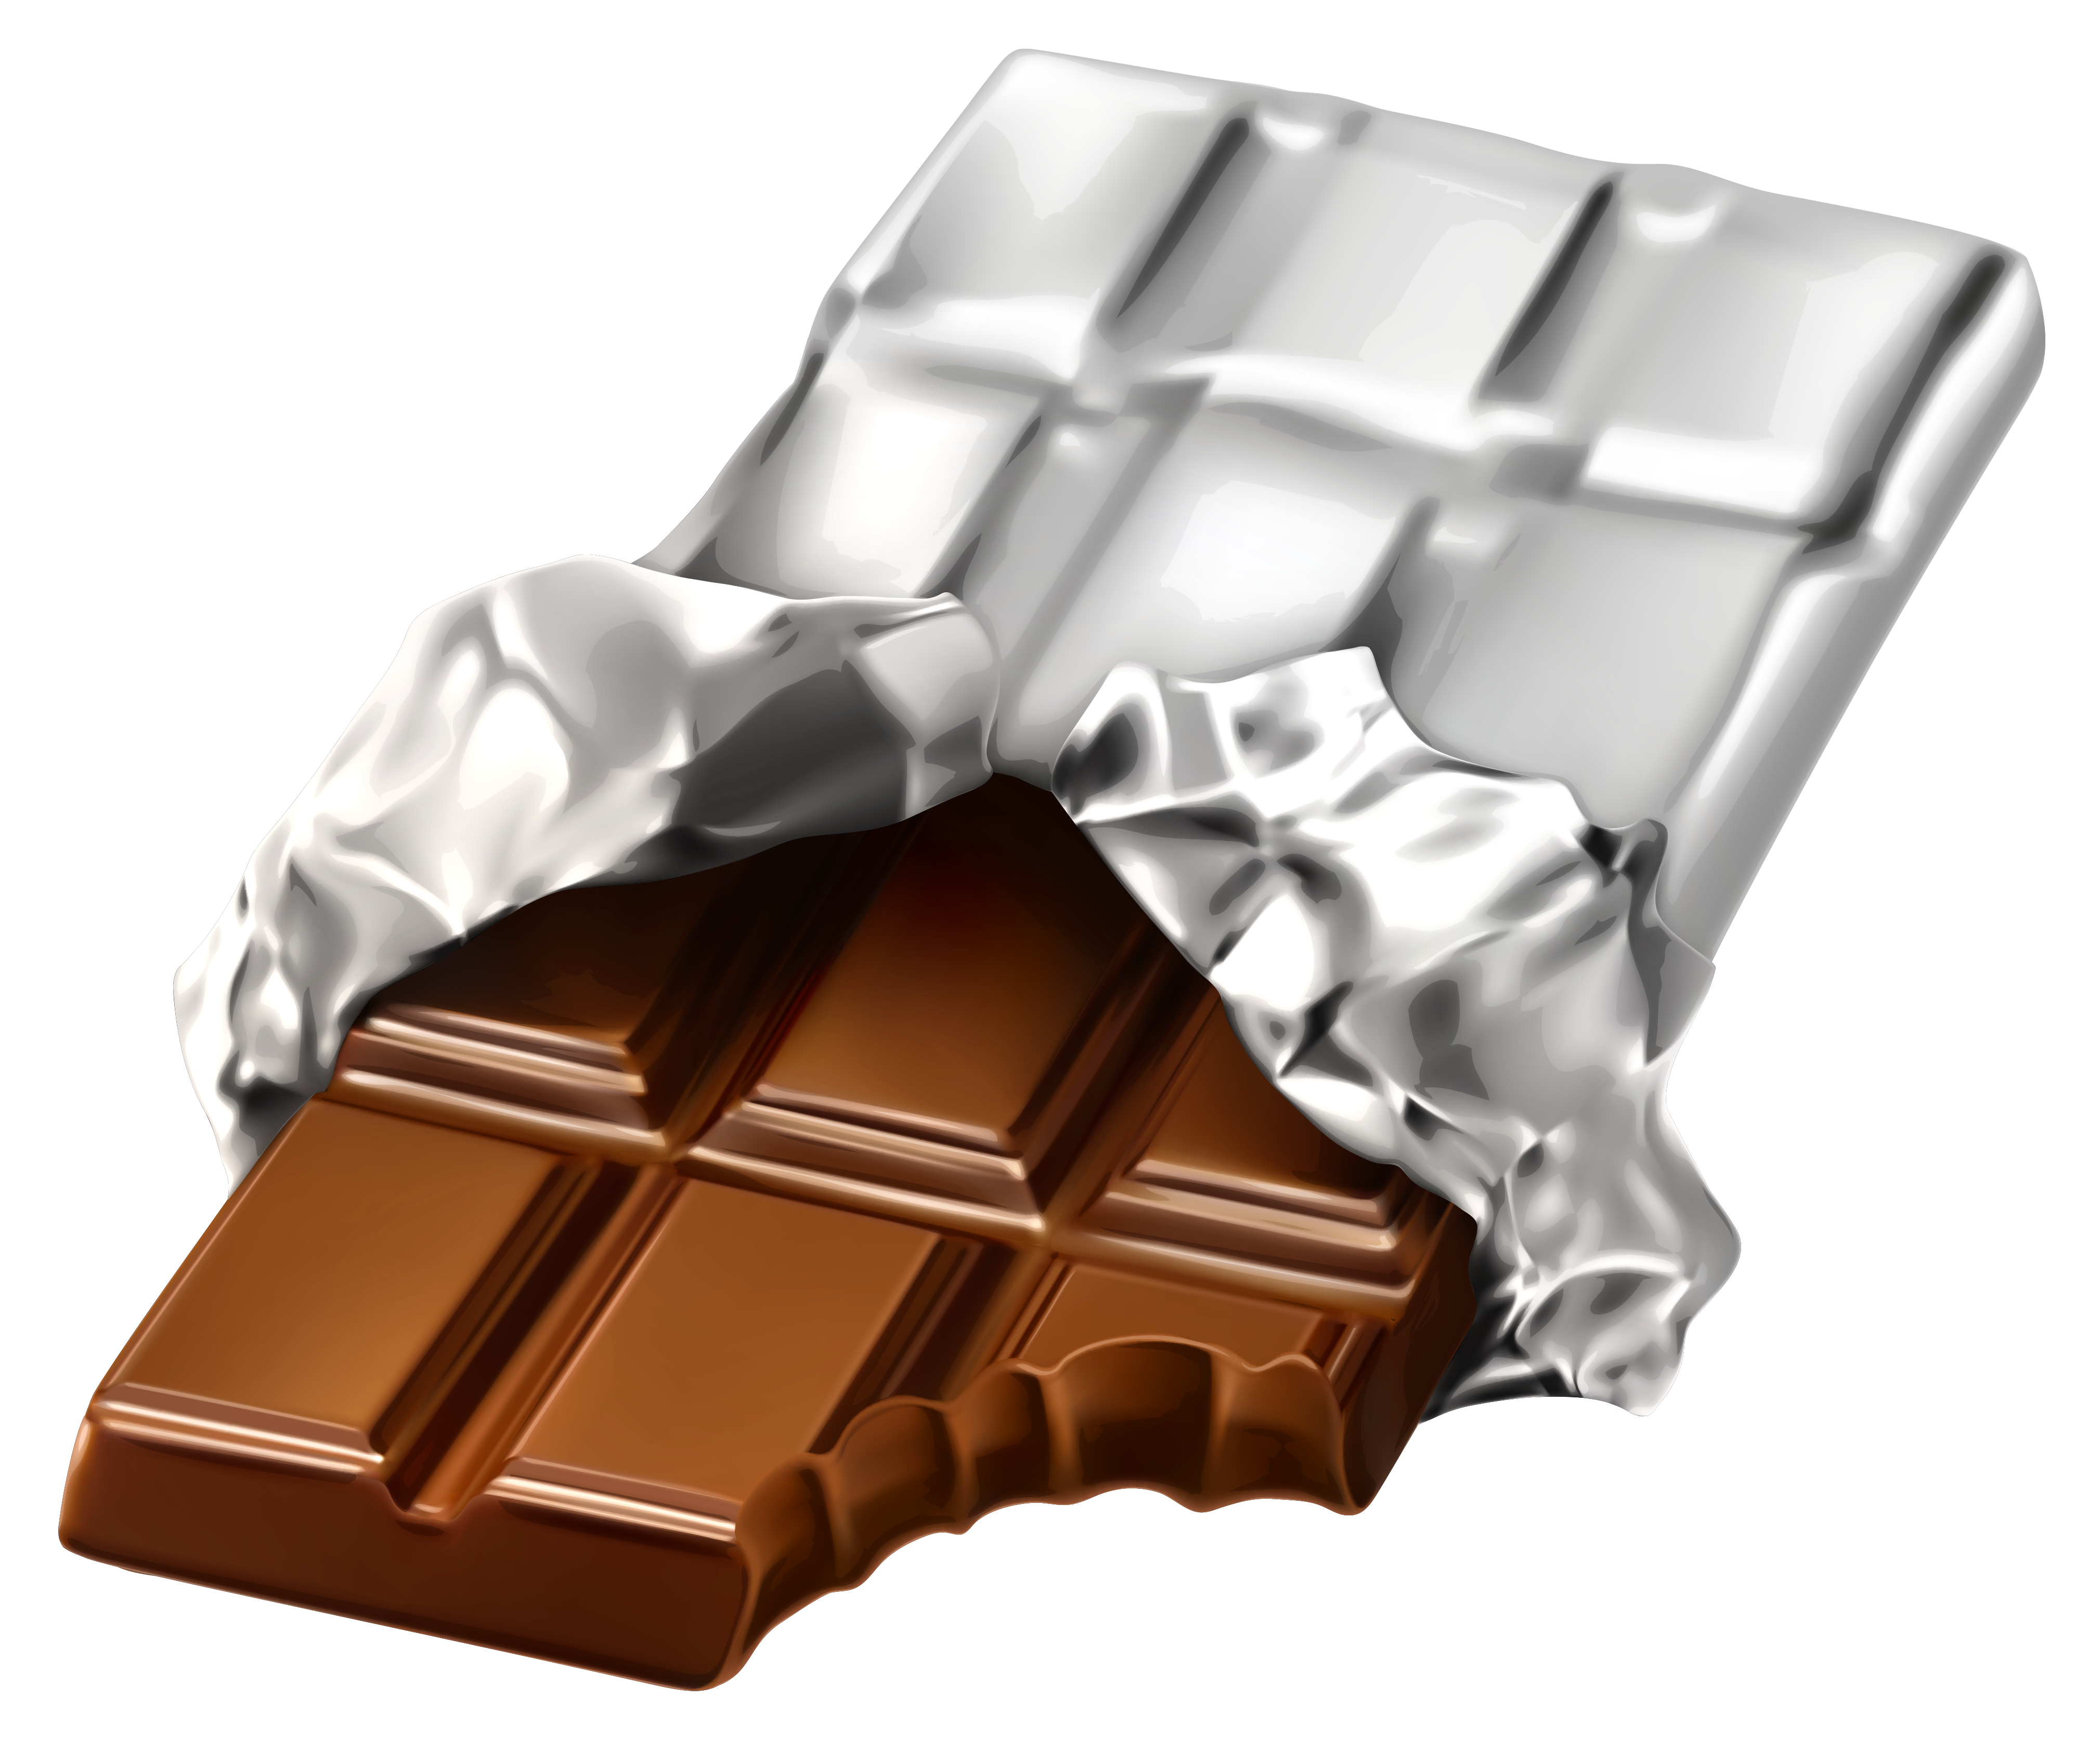 Chocolate clipart #15